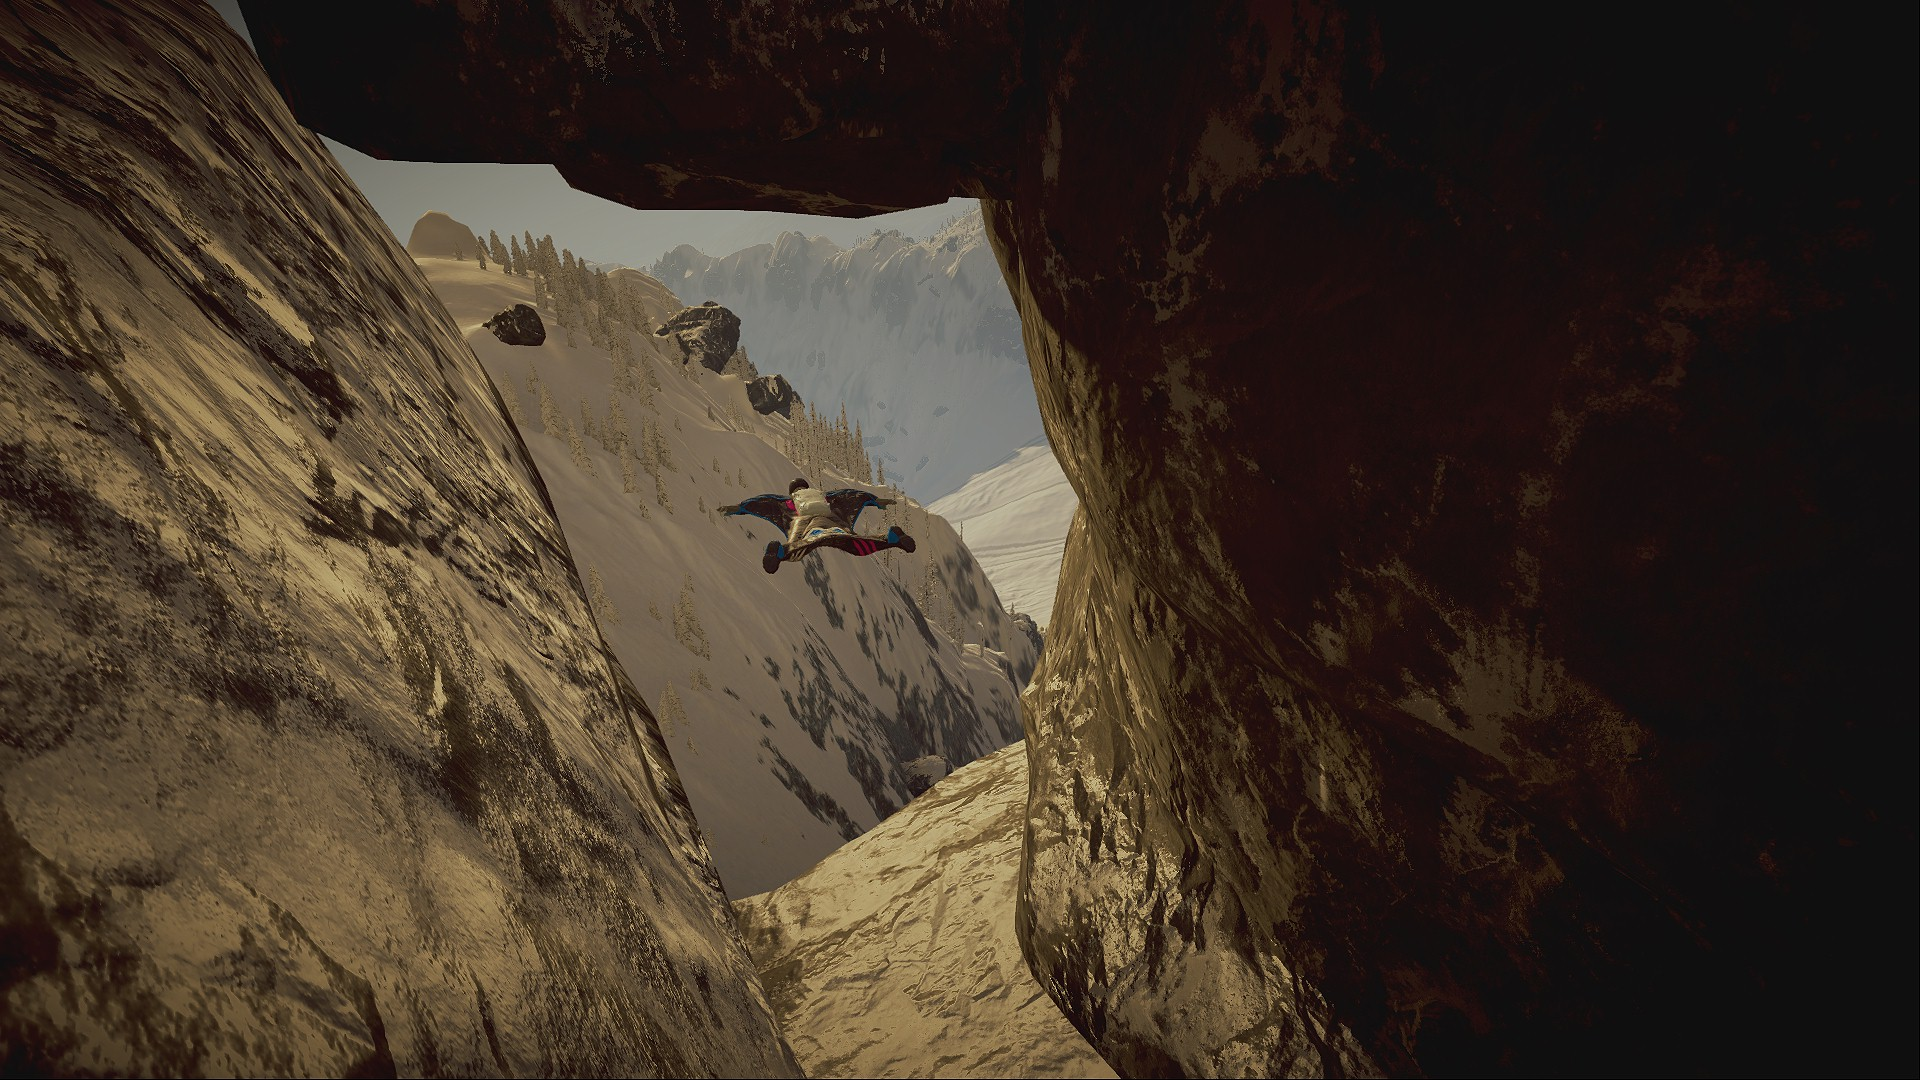 [2019-02-05] Wingsuit Challenges - Header